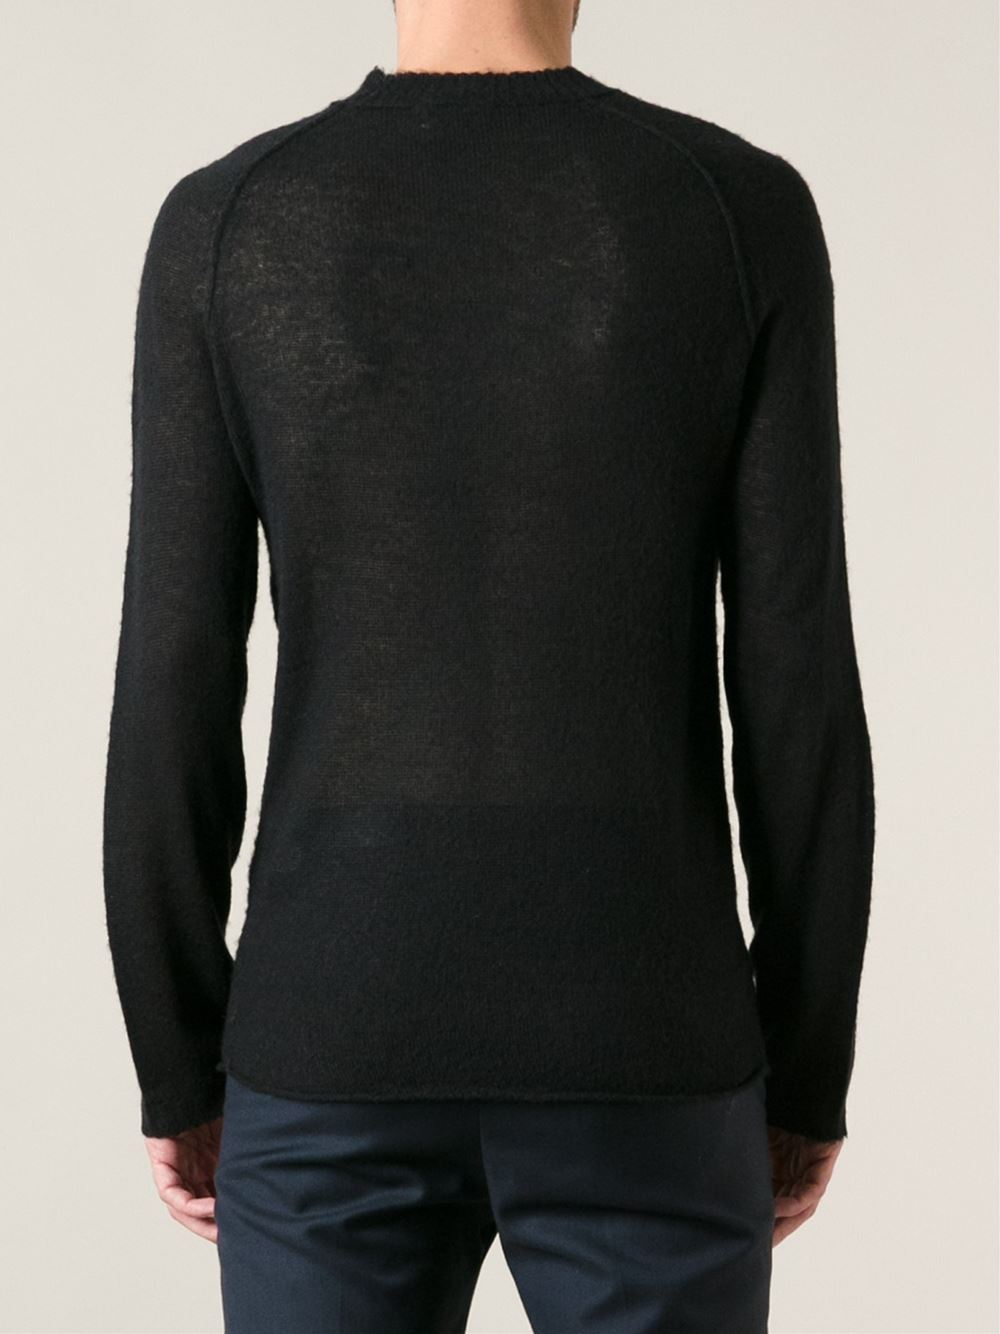 acne studios sheer sweater in black for men lyst. Black Bedroom Furniture Sets. Home Design Ideas